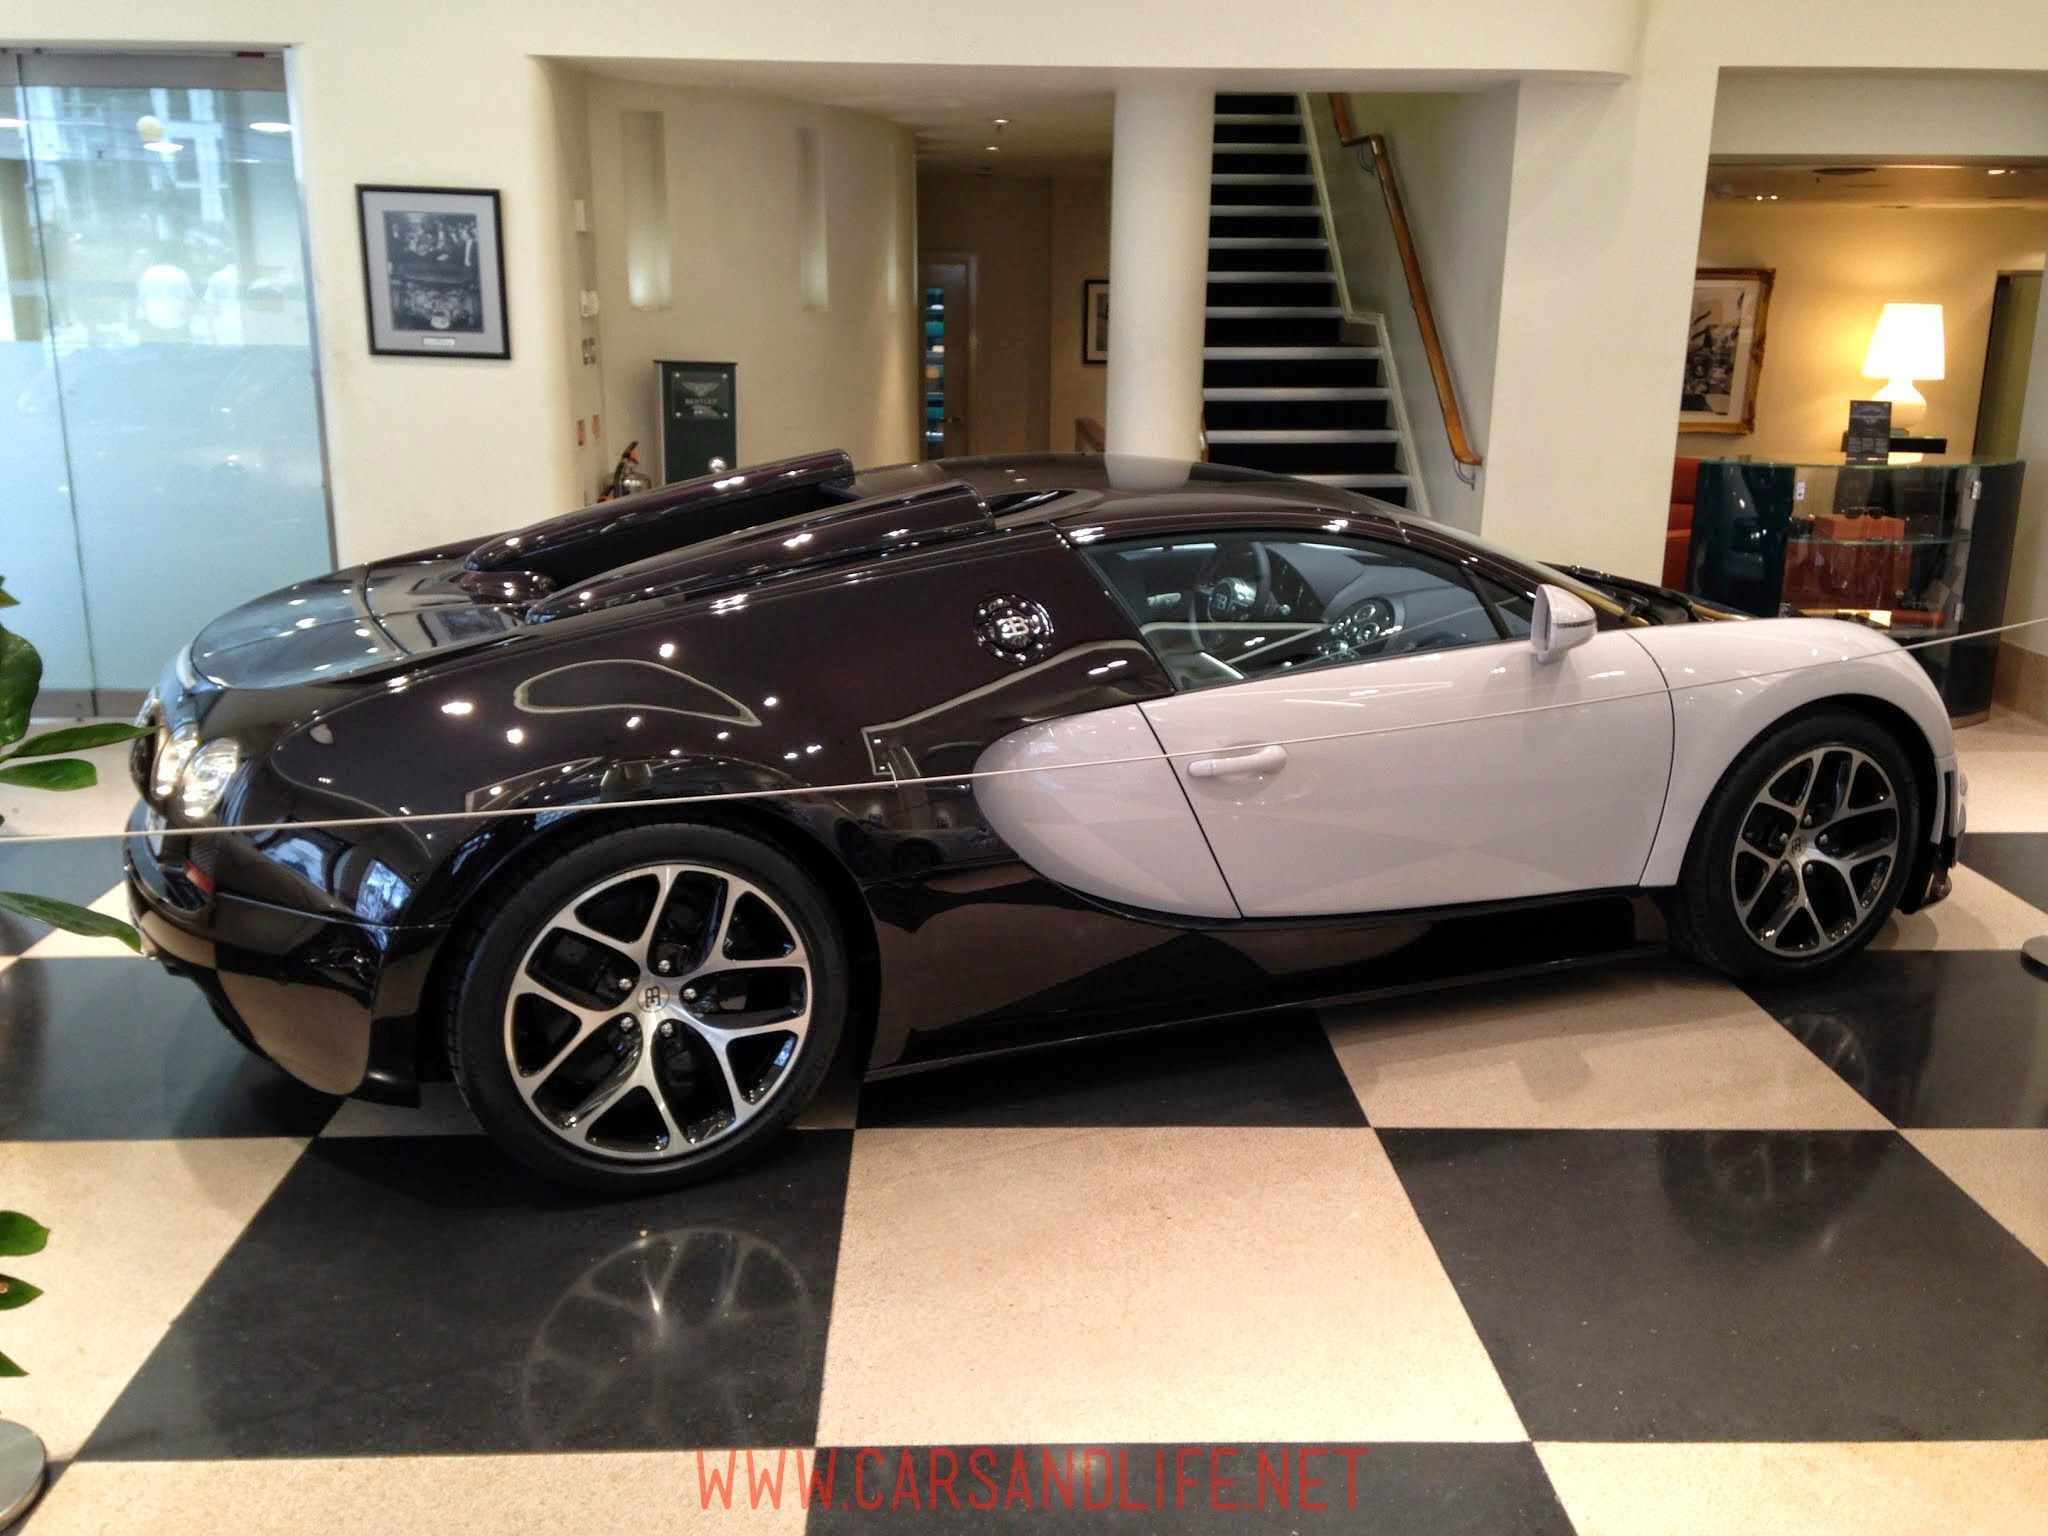 Bugatti Veyron Week at Jack Barclay, HR Owen London